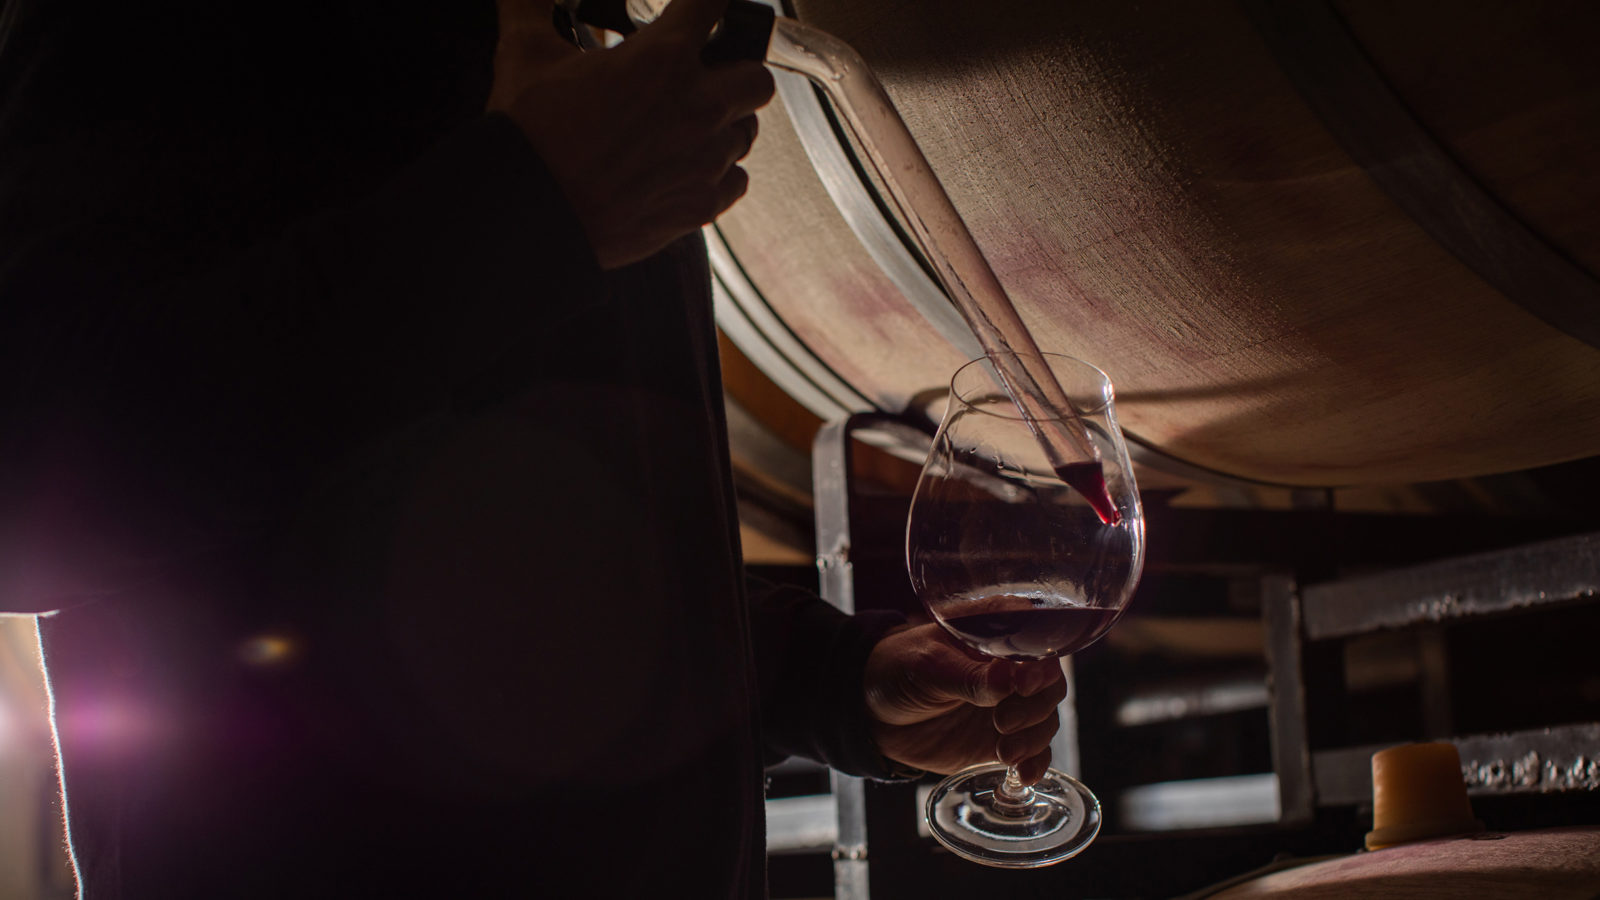 winemaker thieving wine from barrel